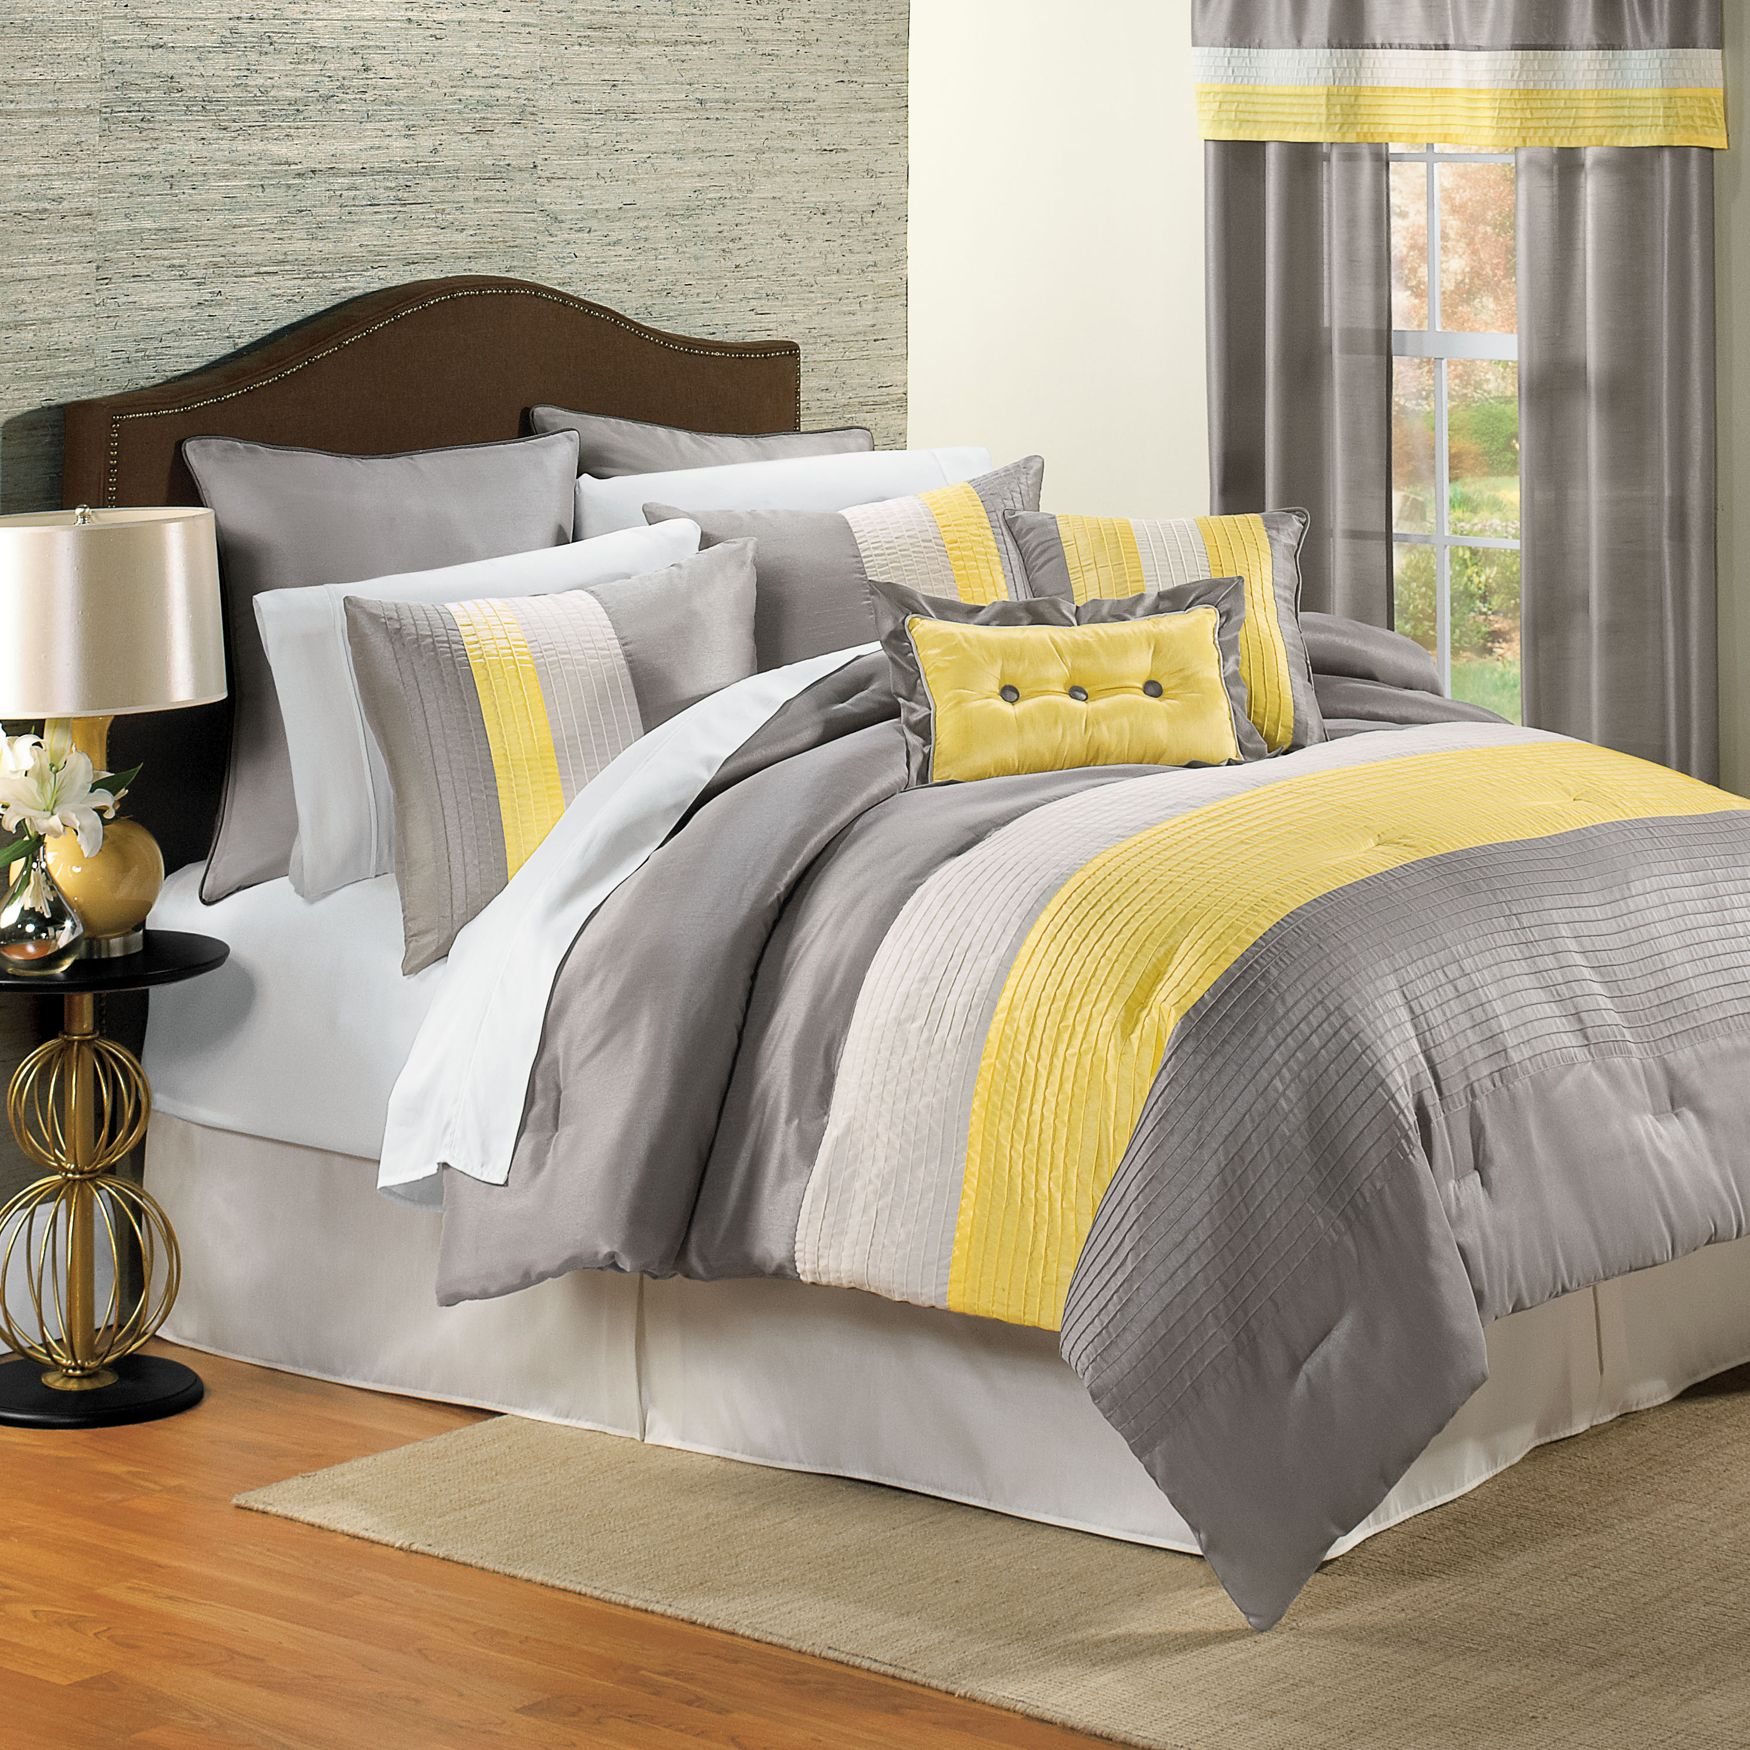 attractive grey of comforter white with combination yellow great and